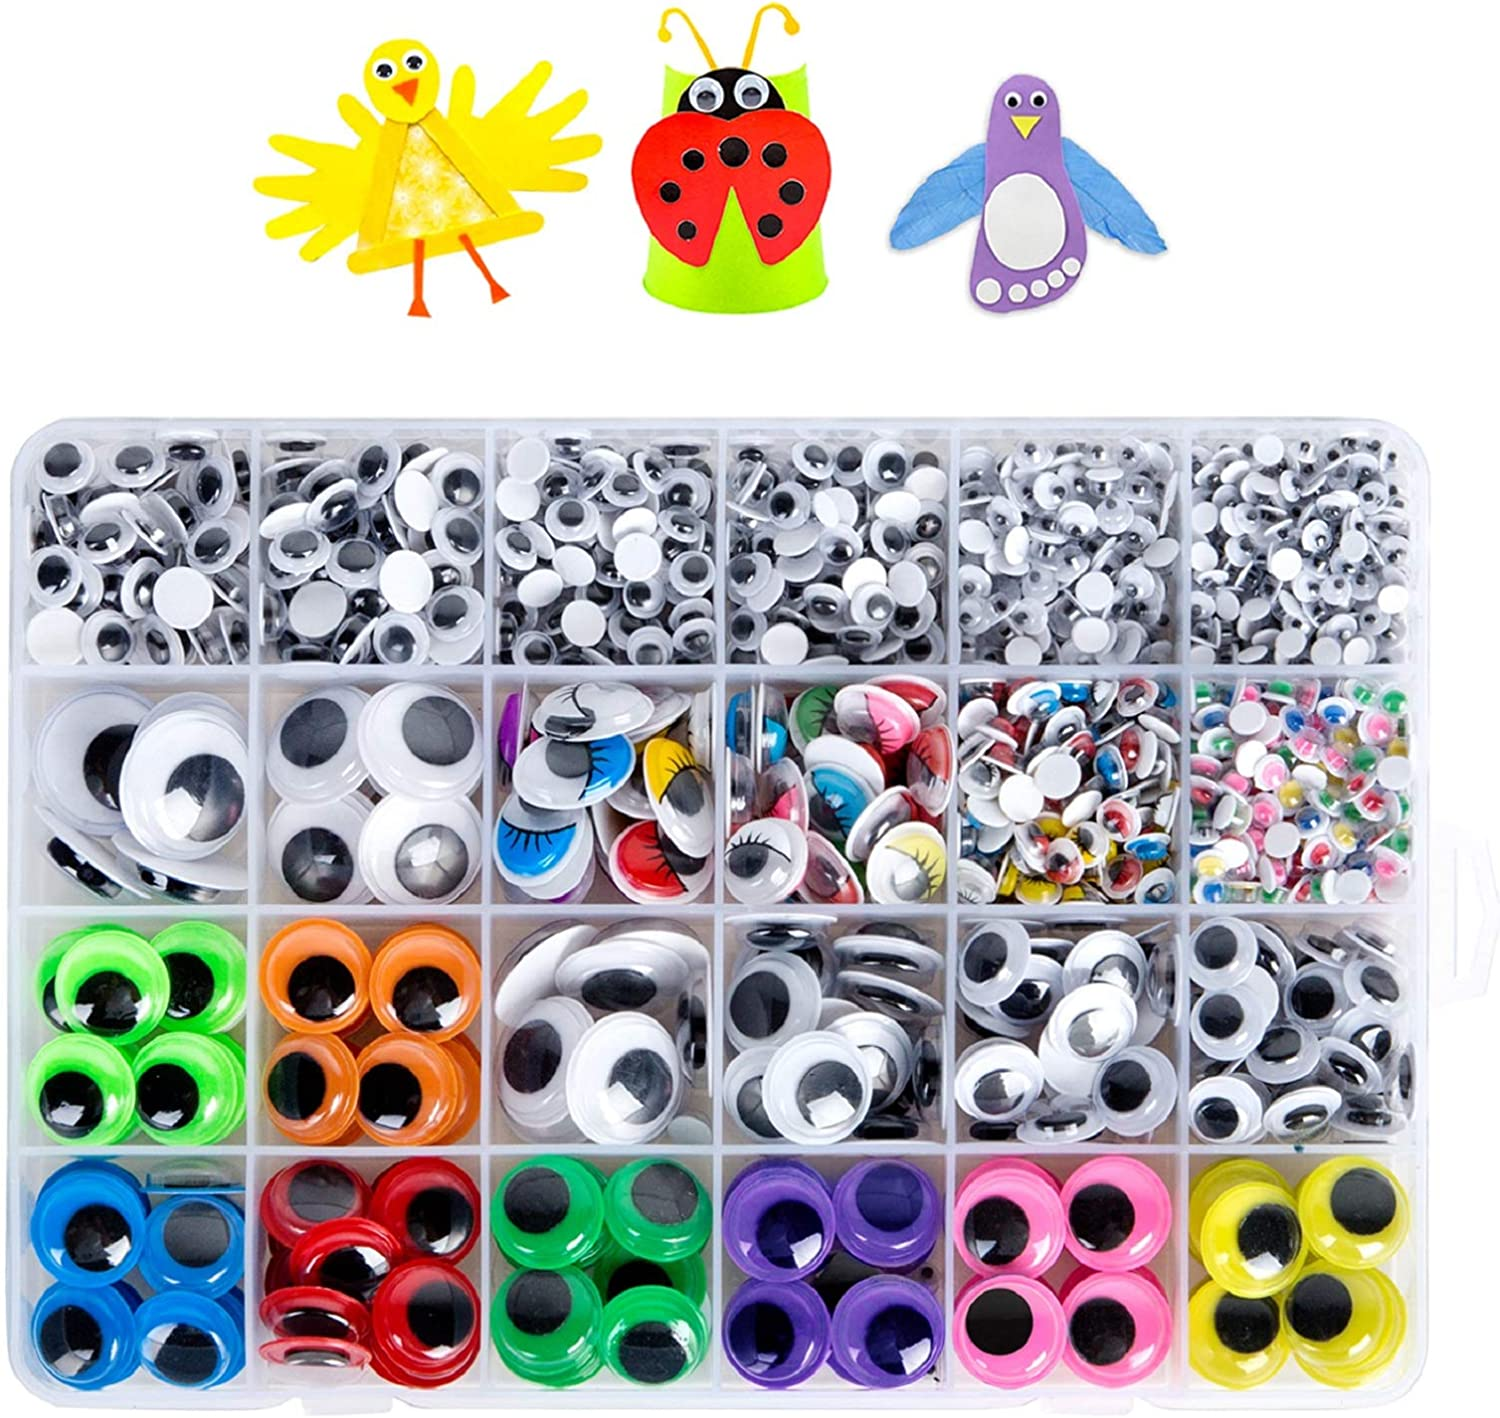 Trafagala 100 Pcs Googly Wiggle Eyes Self Adhesive for Craft Sticker Plastic Wiggle Googly Eyes Self-Adhesive Black Round Sticker Eyes DIY Arts Crafts Scrapbooking Accessories